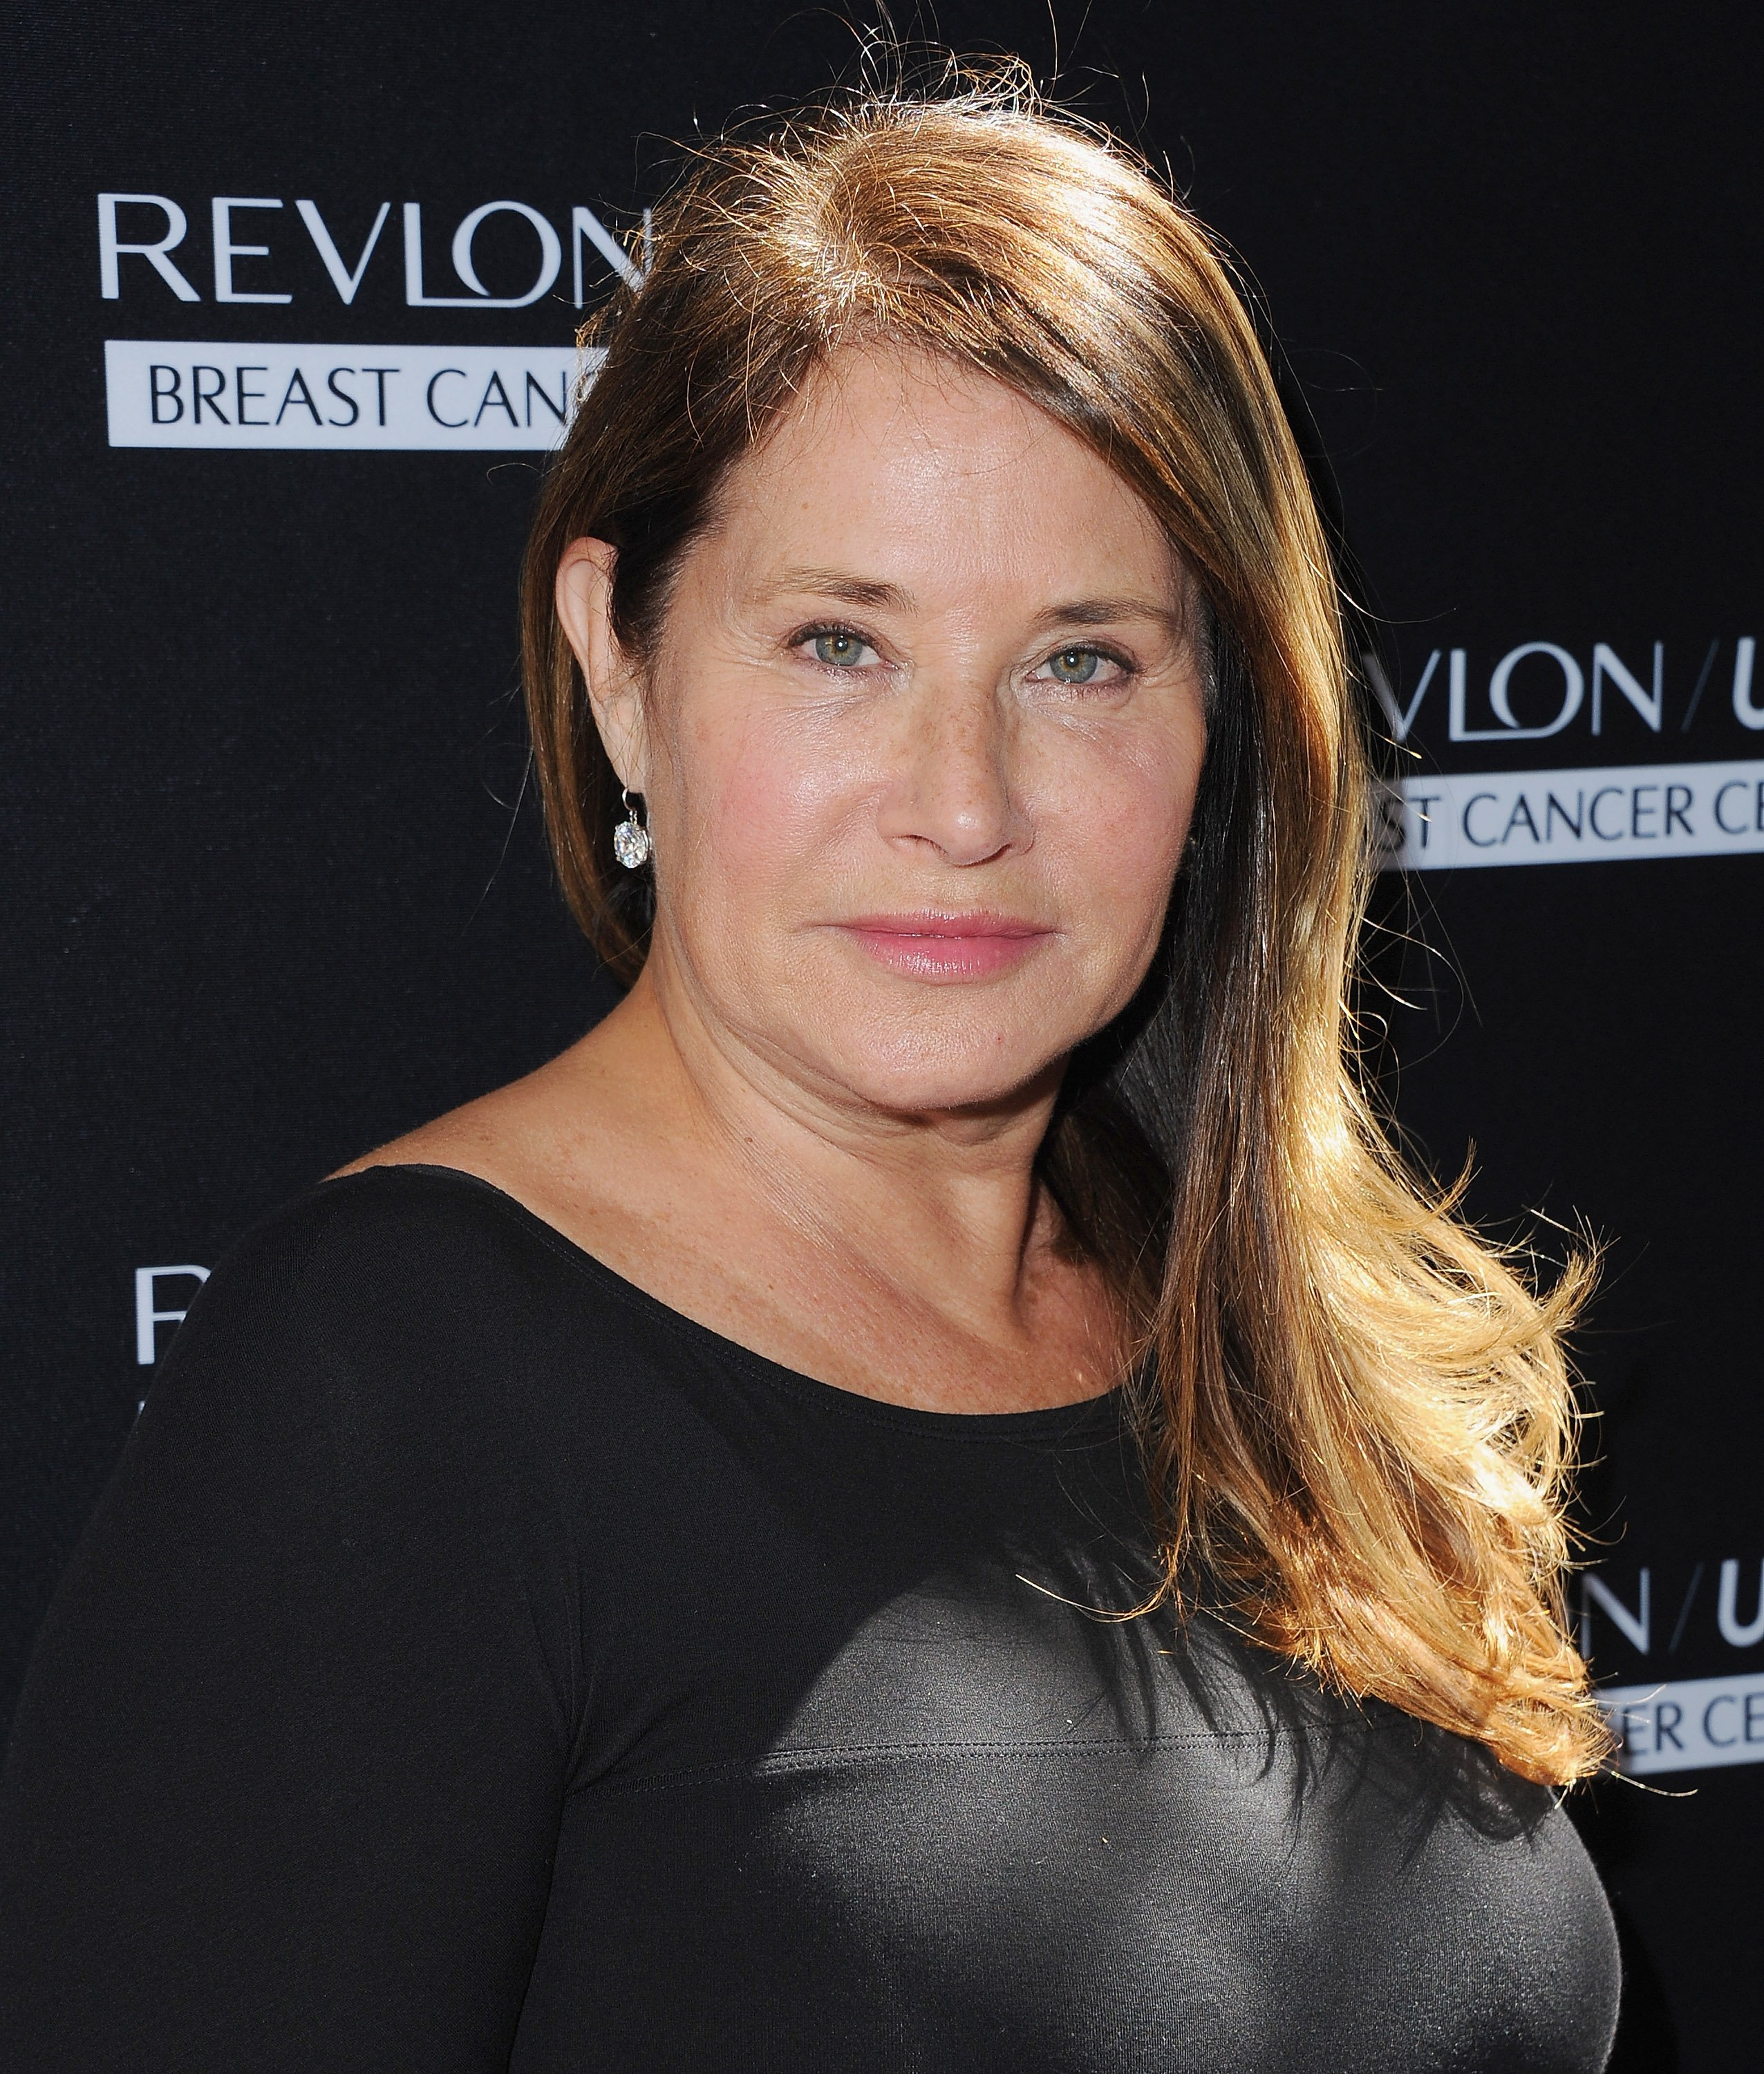 Lorraine Bracco arrives at Revlon's Annual Philanthropic Luncheon at Chateau Marmont on September 27, 2016 in Los Angeles, California. | Photo: Getty Images